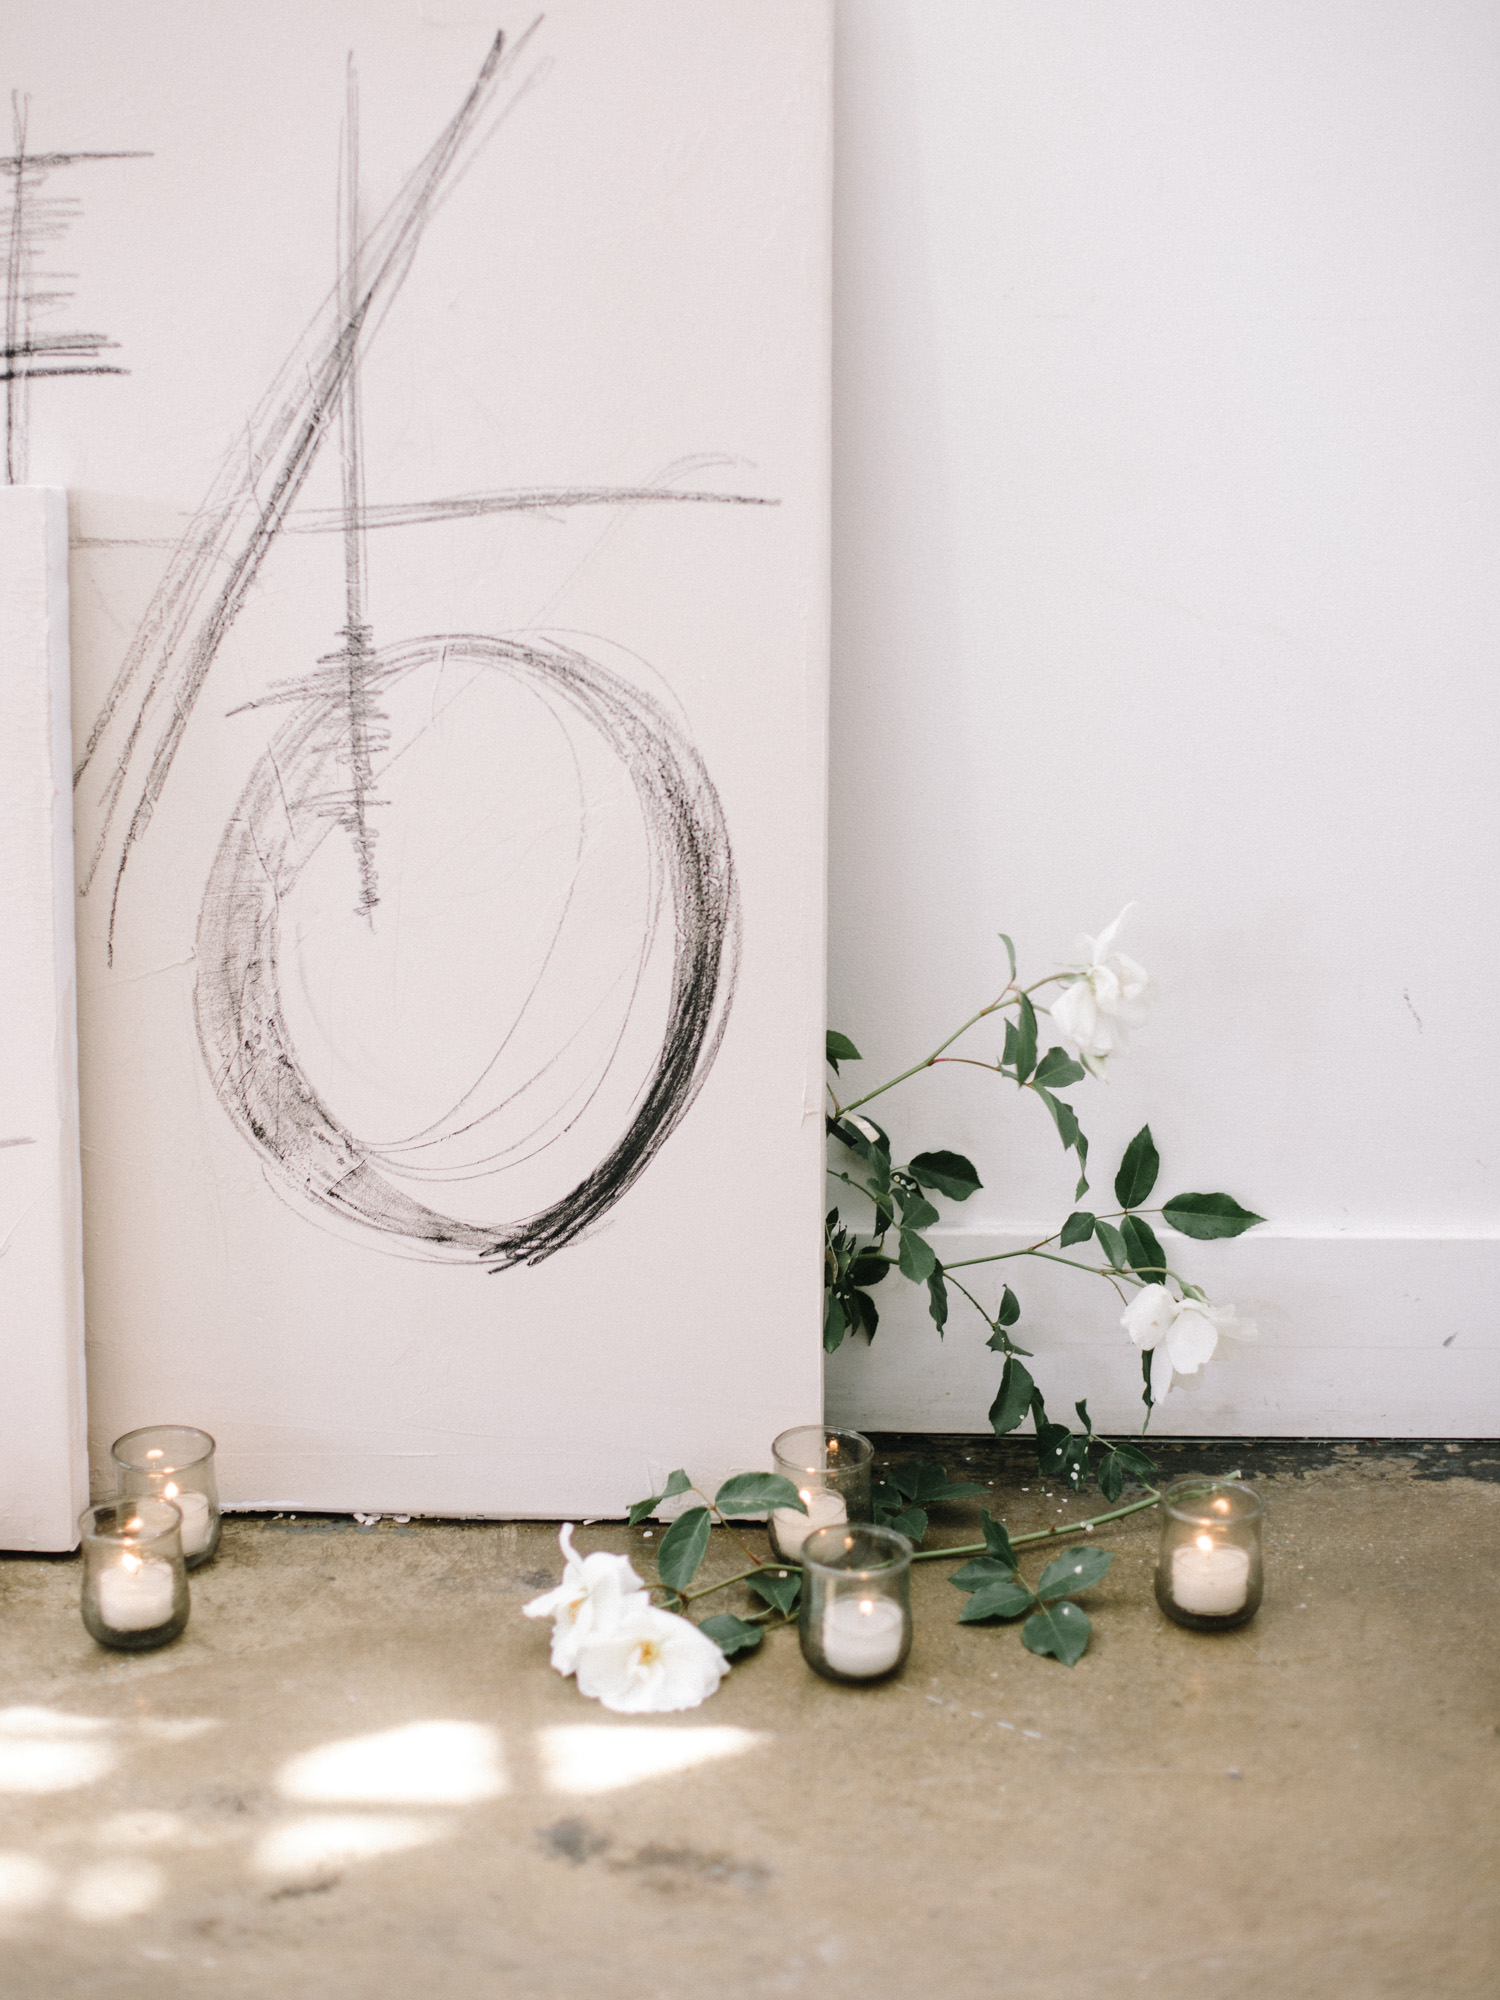 Gestural artwork rests against a wall with white garden roses and tea light candles